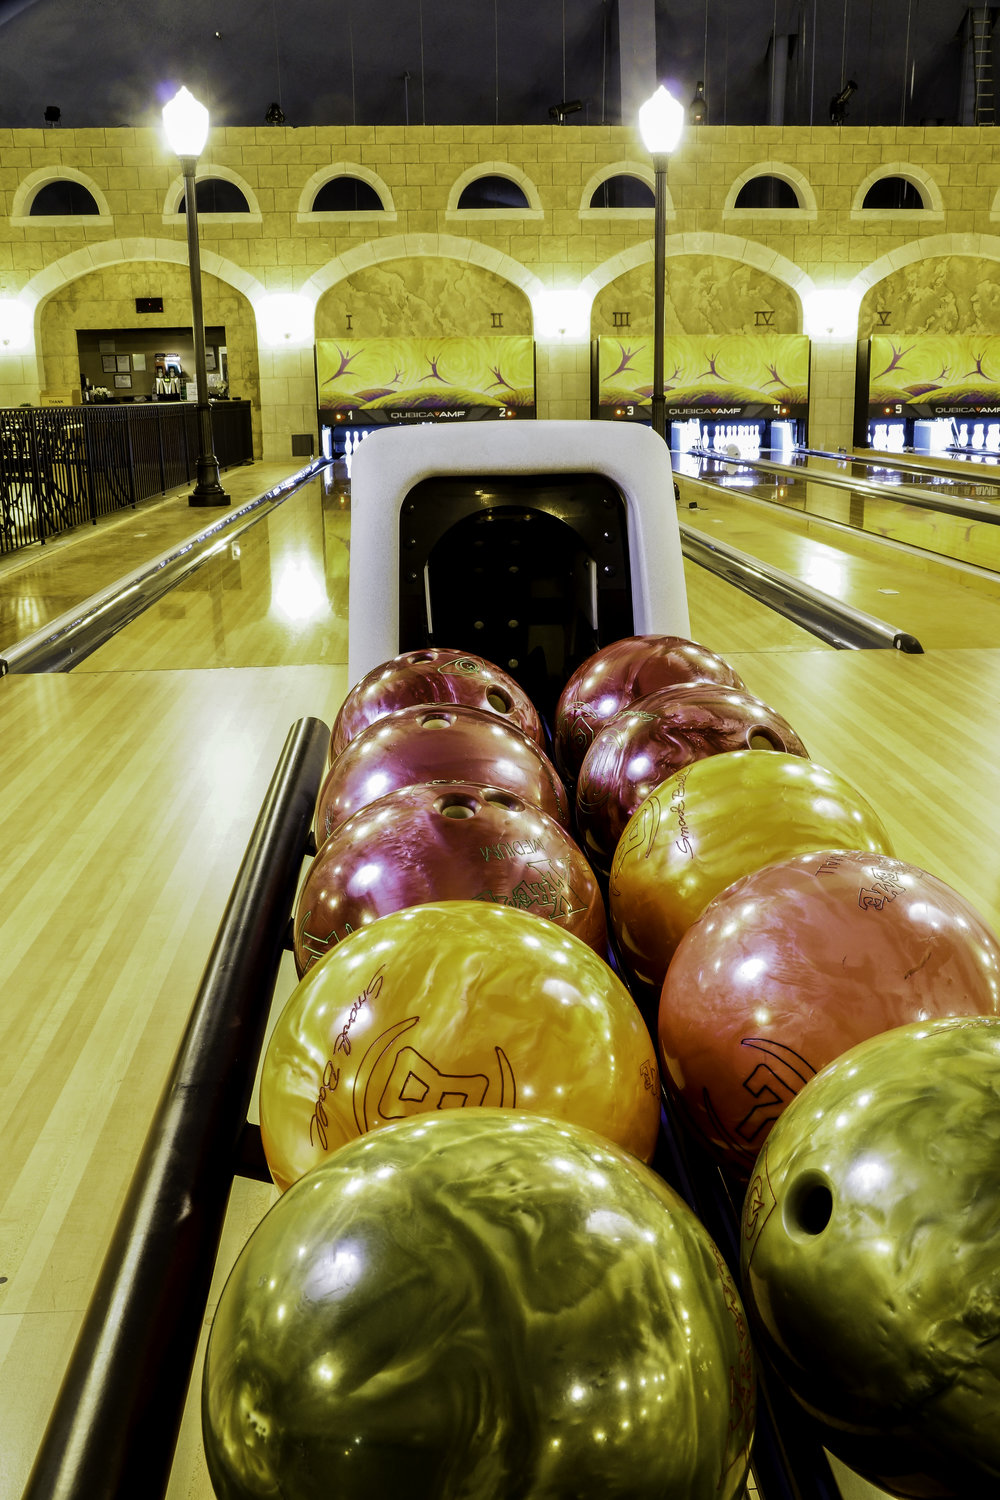 Tuscany Lanes  & Cafe      Twelve-lane, state-of-the-art bowling alley with a top-notch cafe that rivals the best in the city.